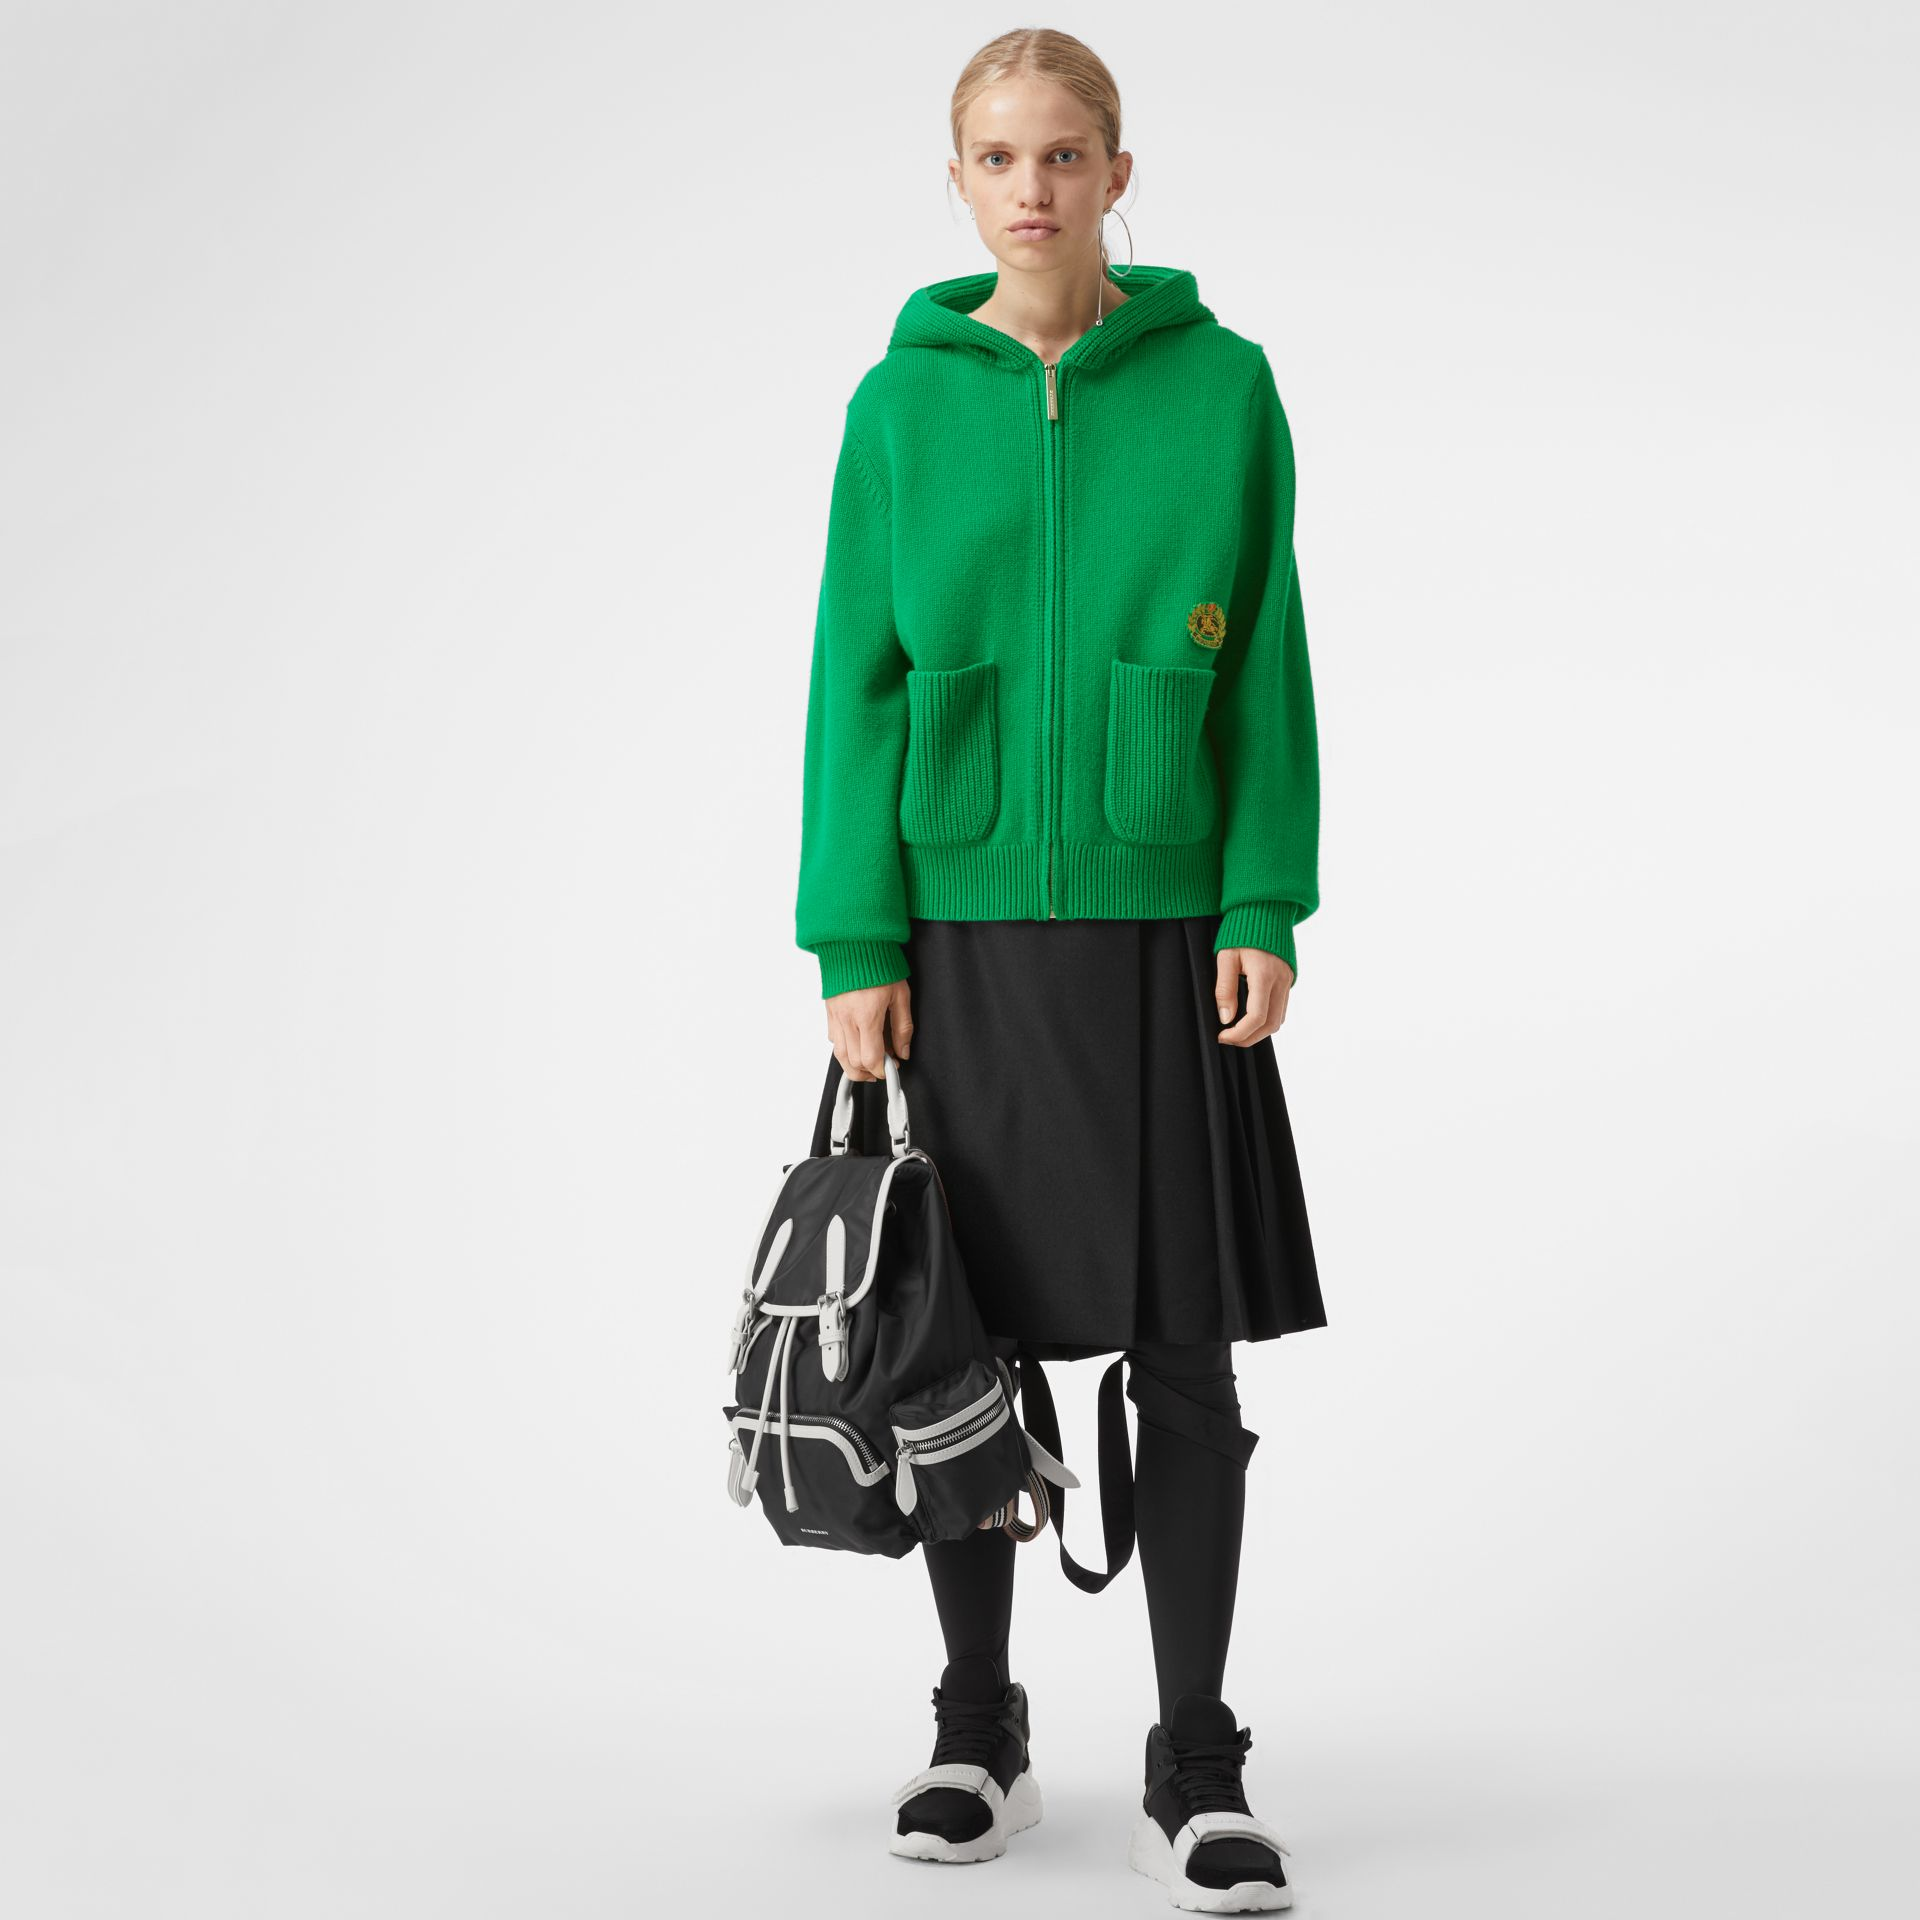 Embroidered Archive Logo Cashmere Hooded Top in Vibrant Green - Women | Burberry United Kingdom - gallery image 0